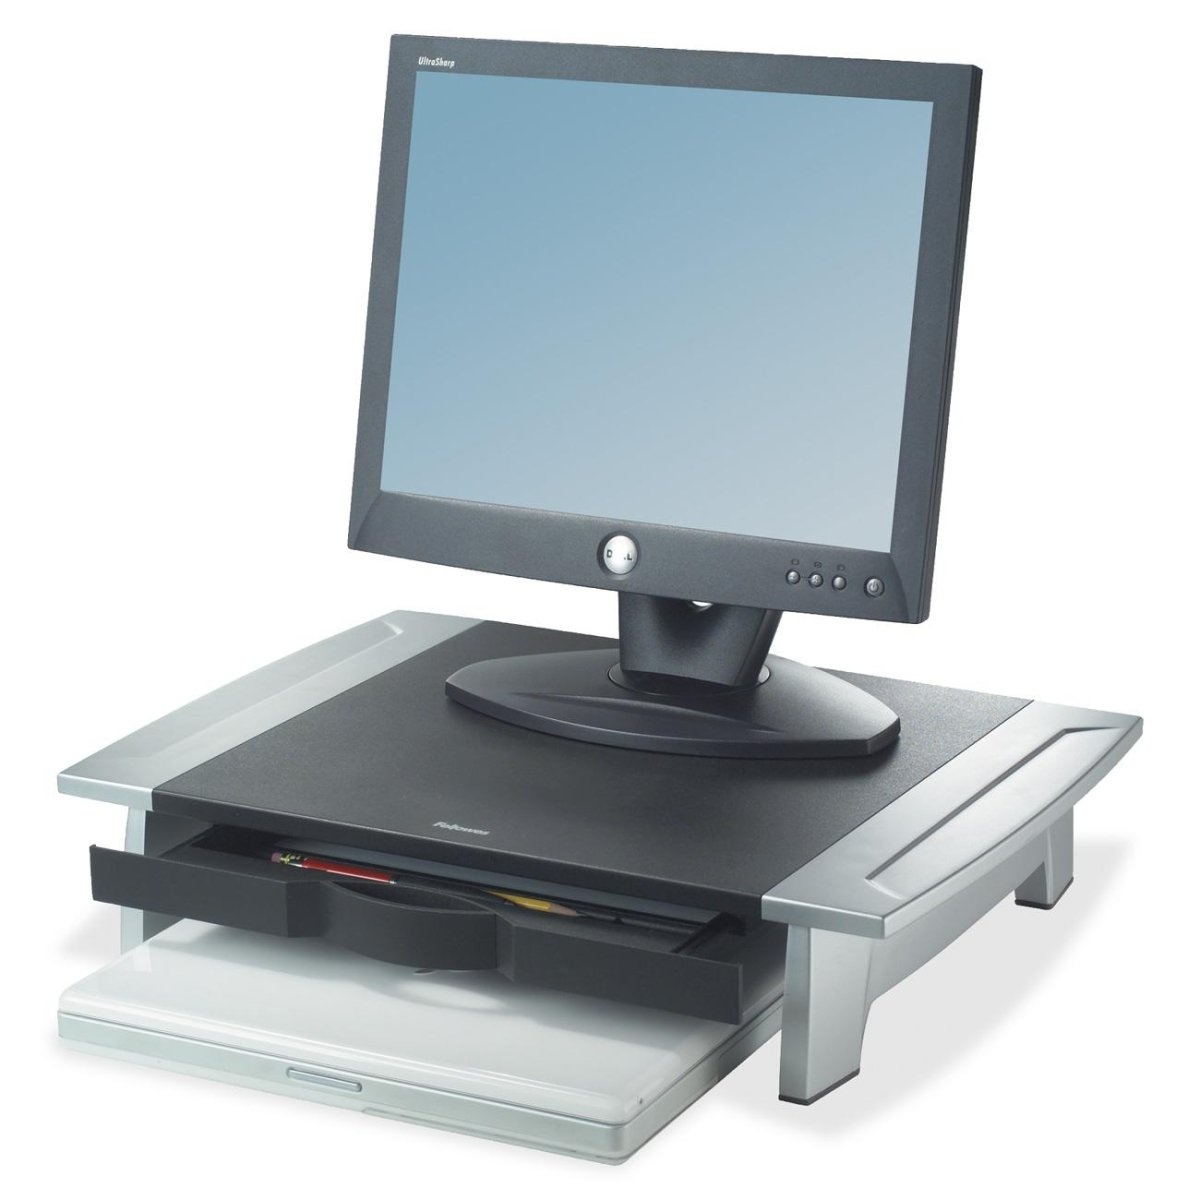 Fellowes 8031101 Office Suites Monitor Riser - Up to 21 inch Screen Support - 80 lb Load Capacity - 4.2 inch Height x 19.9 inch Width x 14.1 inch Depth - Desktop - Silver, Black